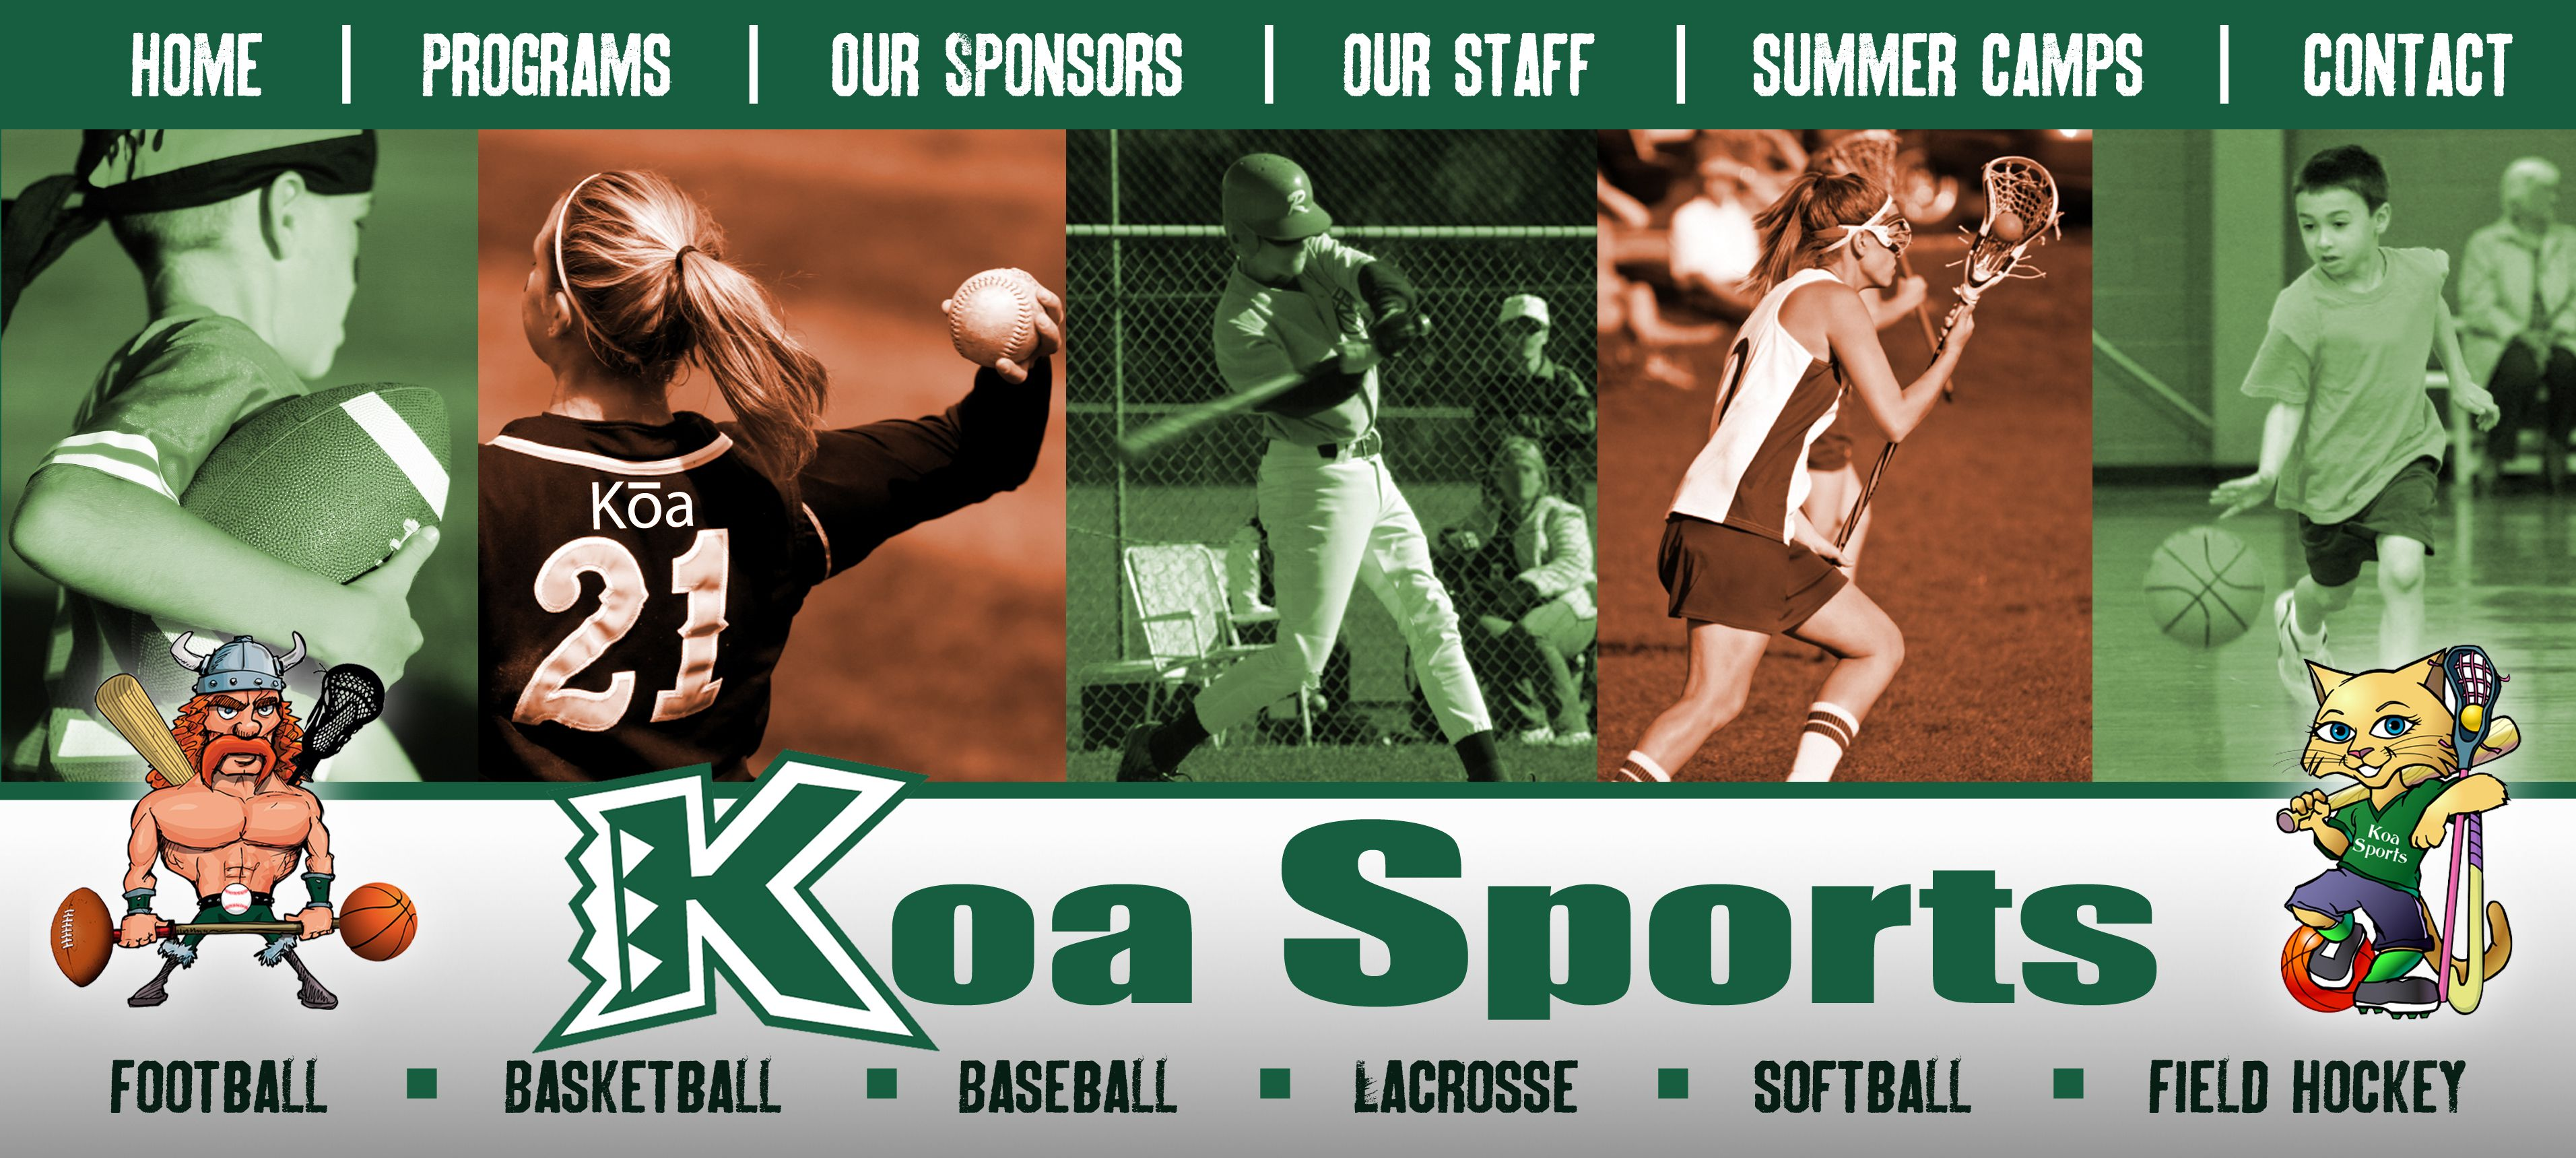 Welcome To Koa Sports Pronounced Koh Uh Where Our Motto Is Changing Kids Lives Through Sports We Are The Leader Of B With Images Sports Camp Kids Sports Summer Camp